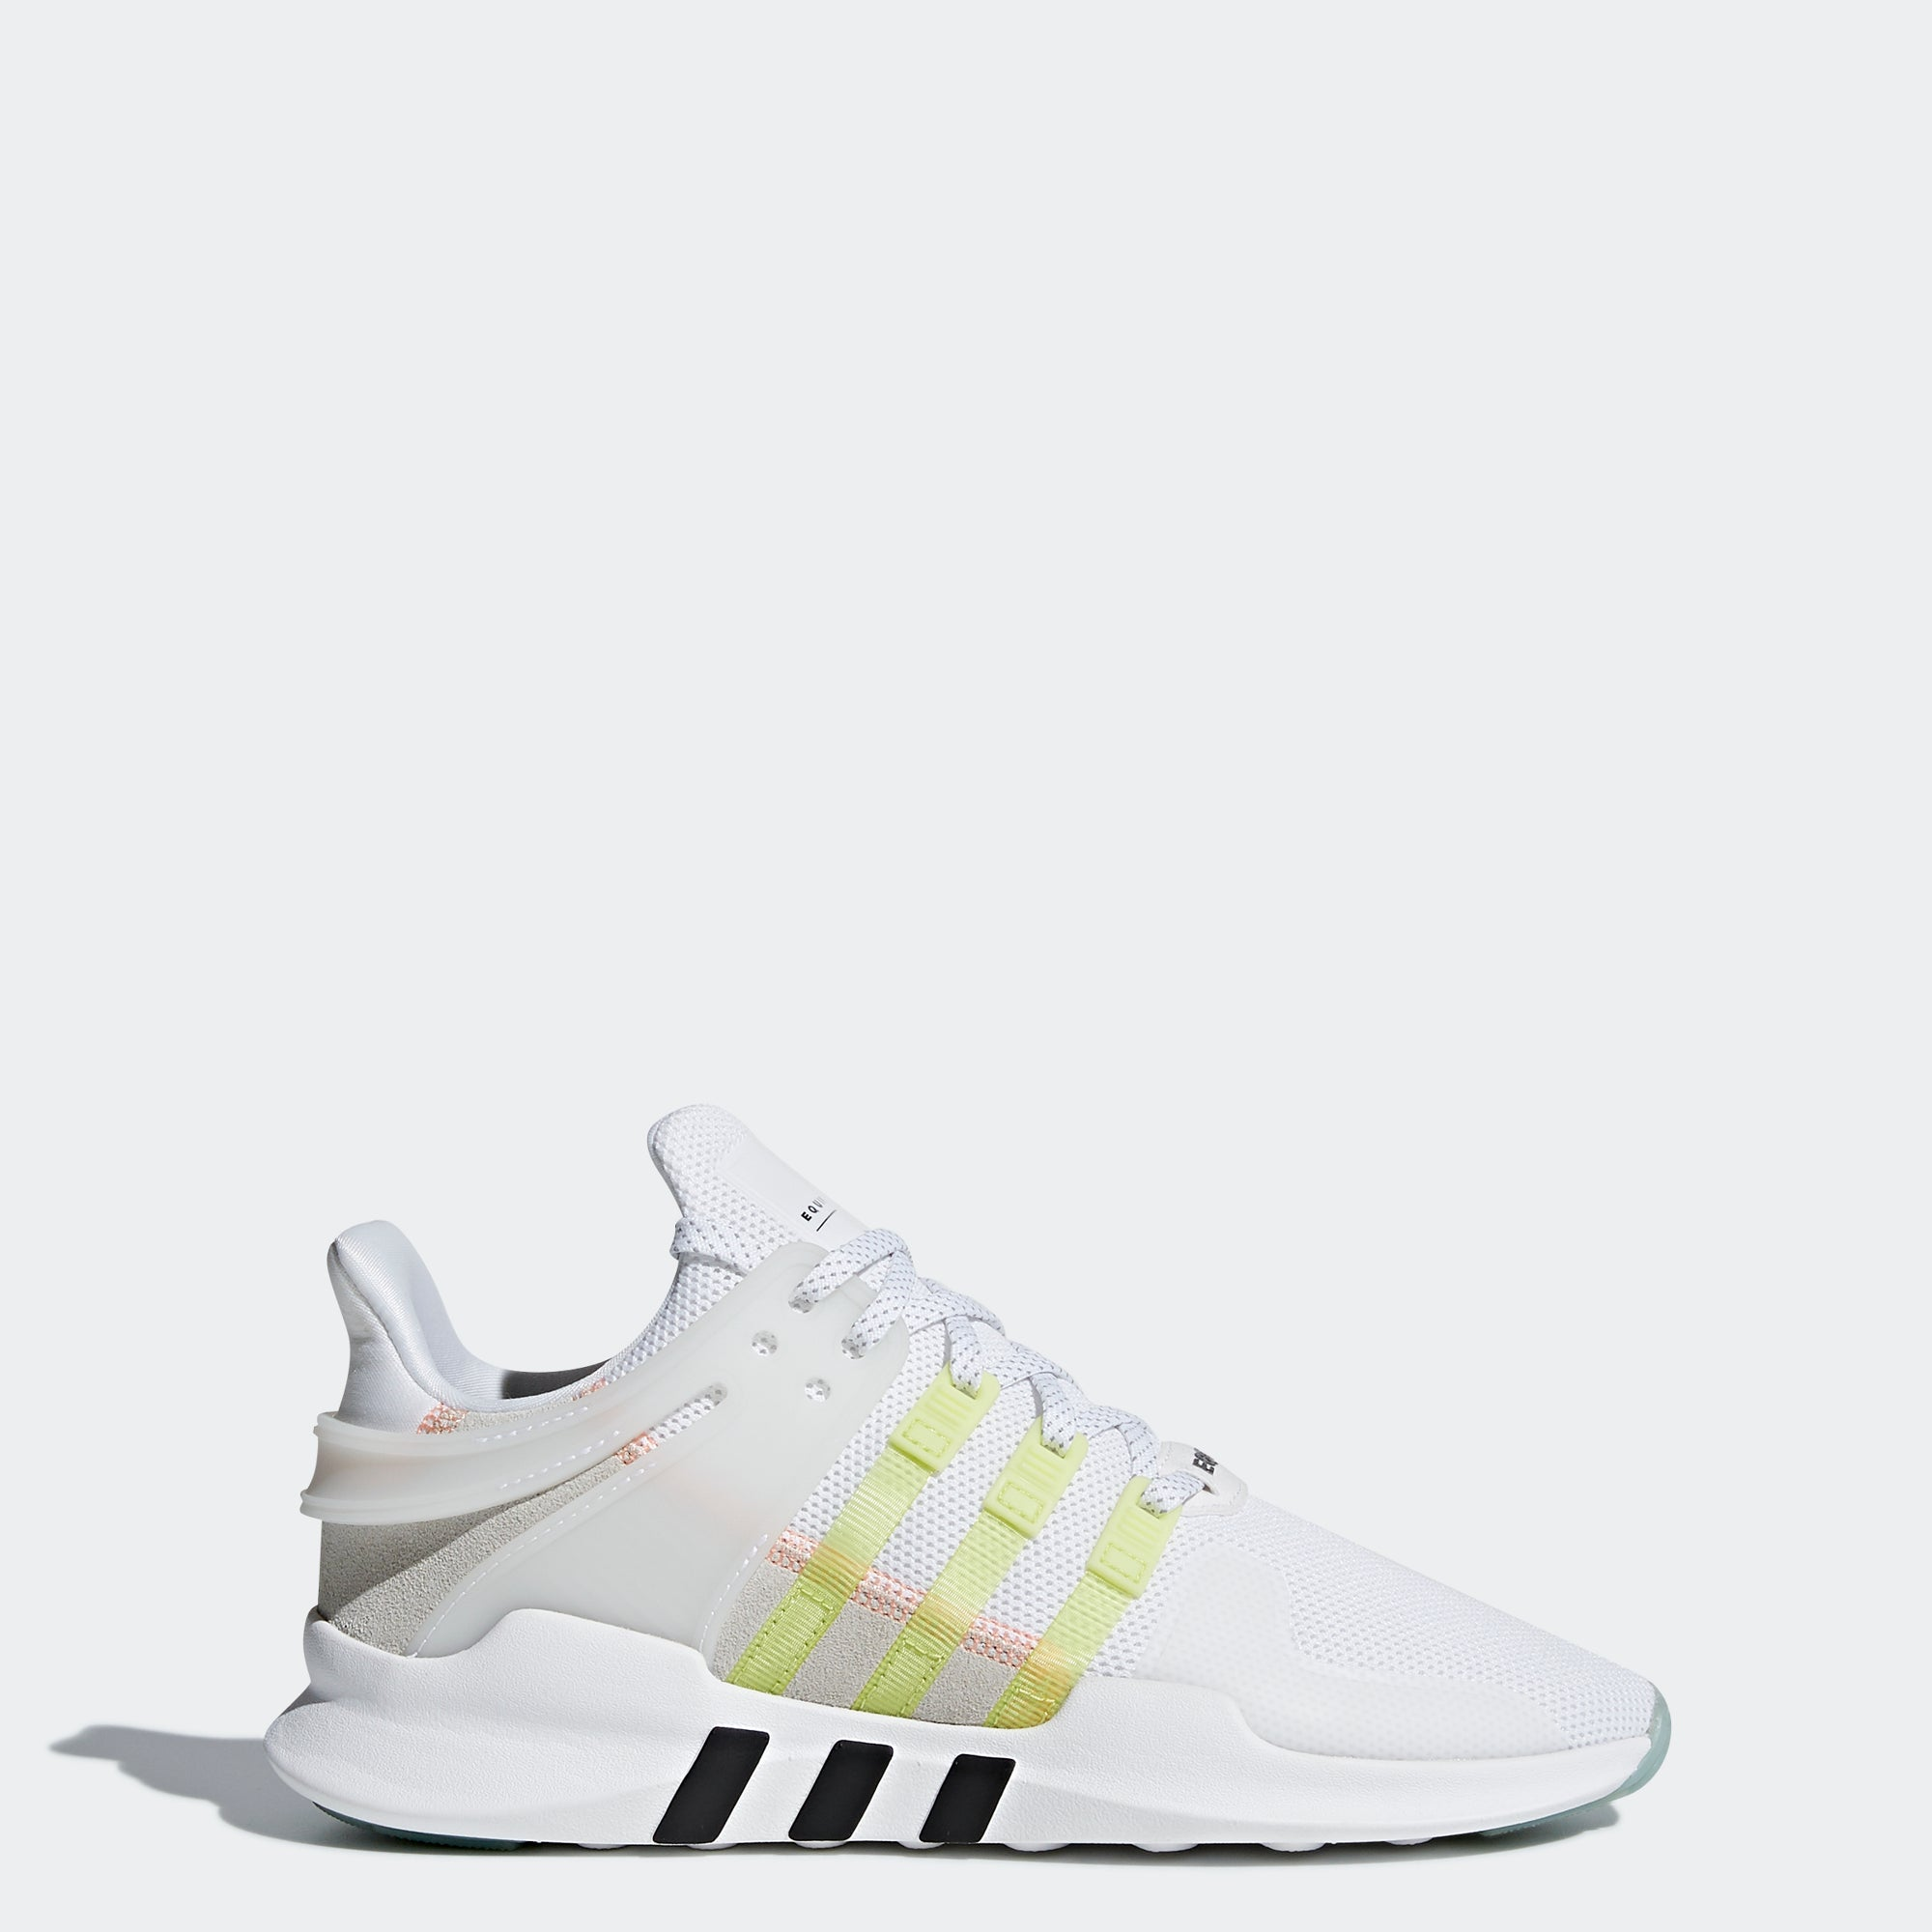 buy online 237fc e36d7 ... czech womens adidas originals eqt support adv shoes cloud white and  yellow db0401 chicago city sports